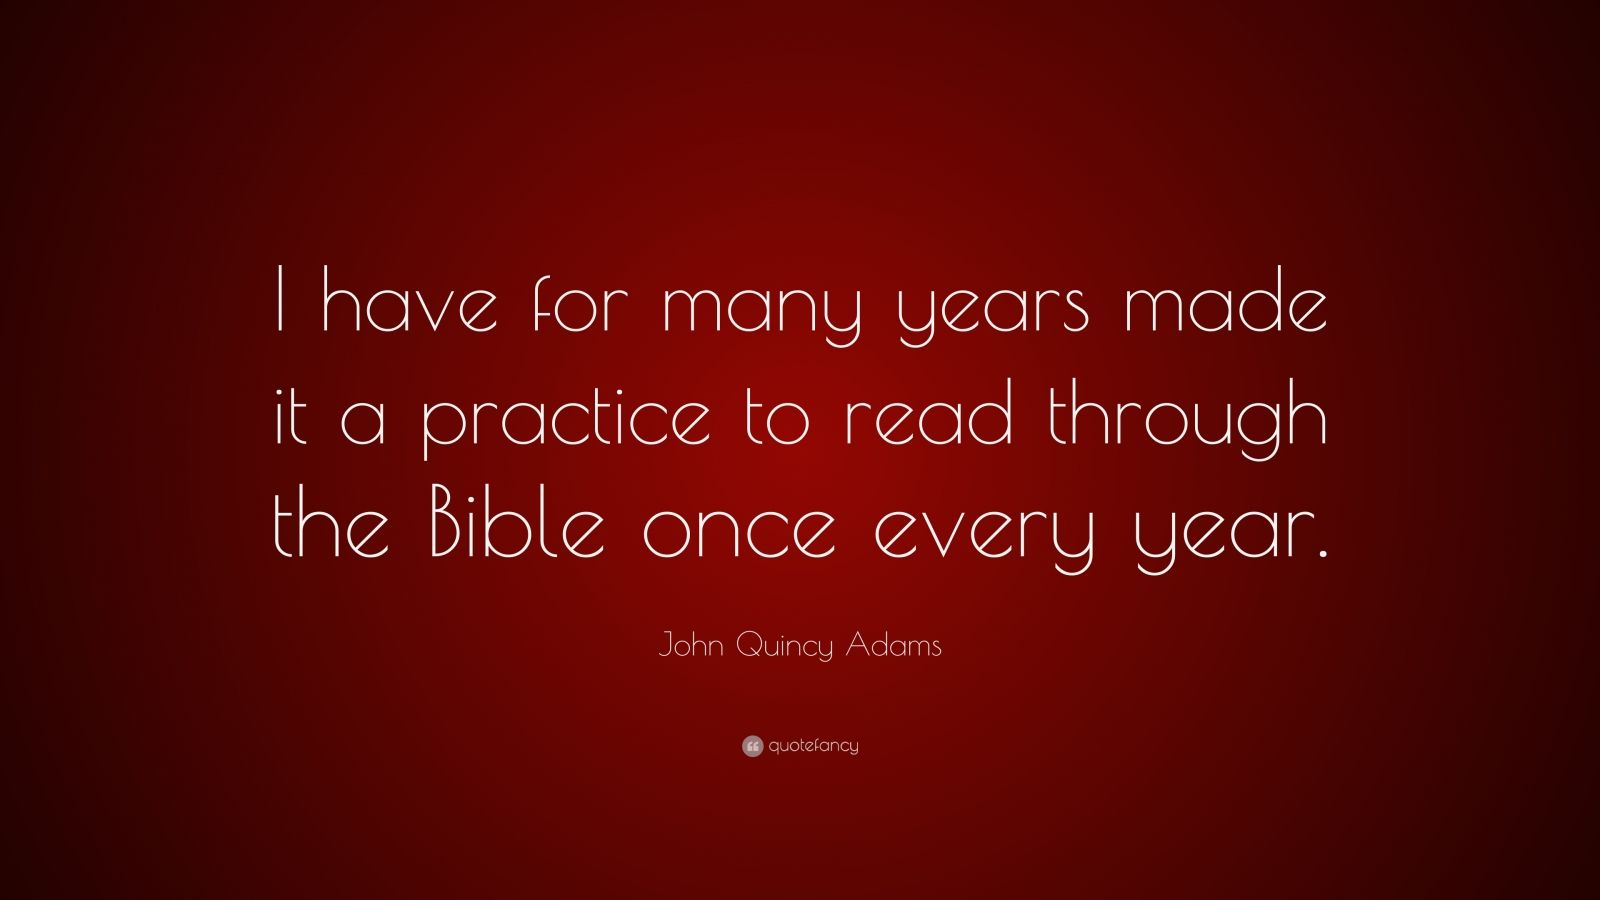 """John Quincy Adams Quote: """"I have for many years made it a practice to read through the Bible once every year."""""""